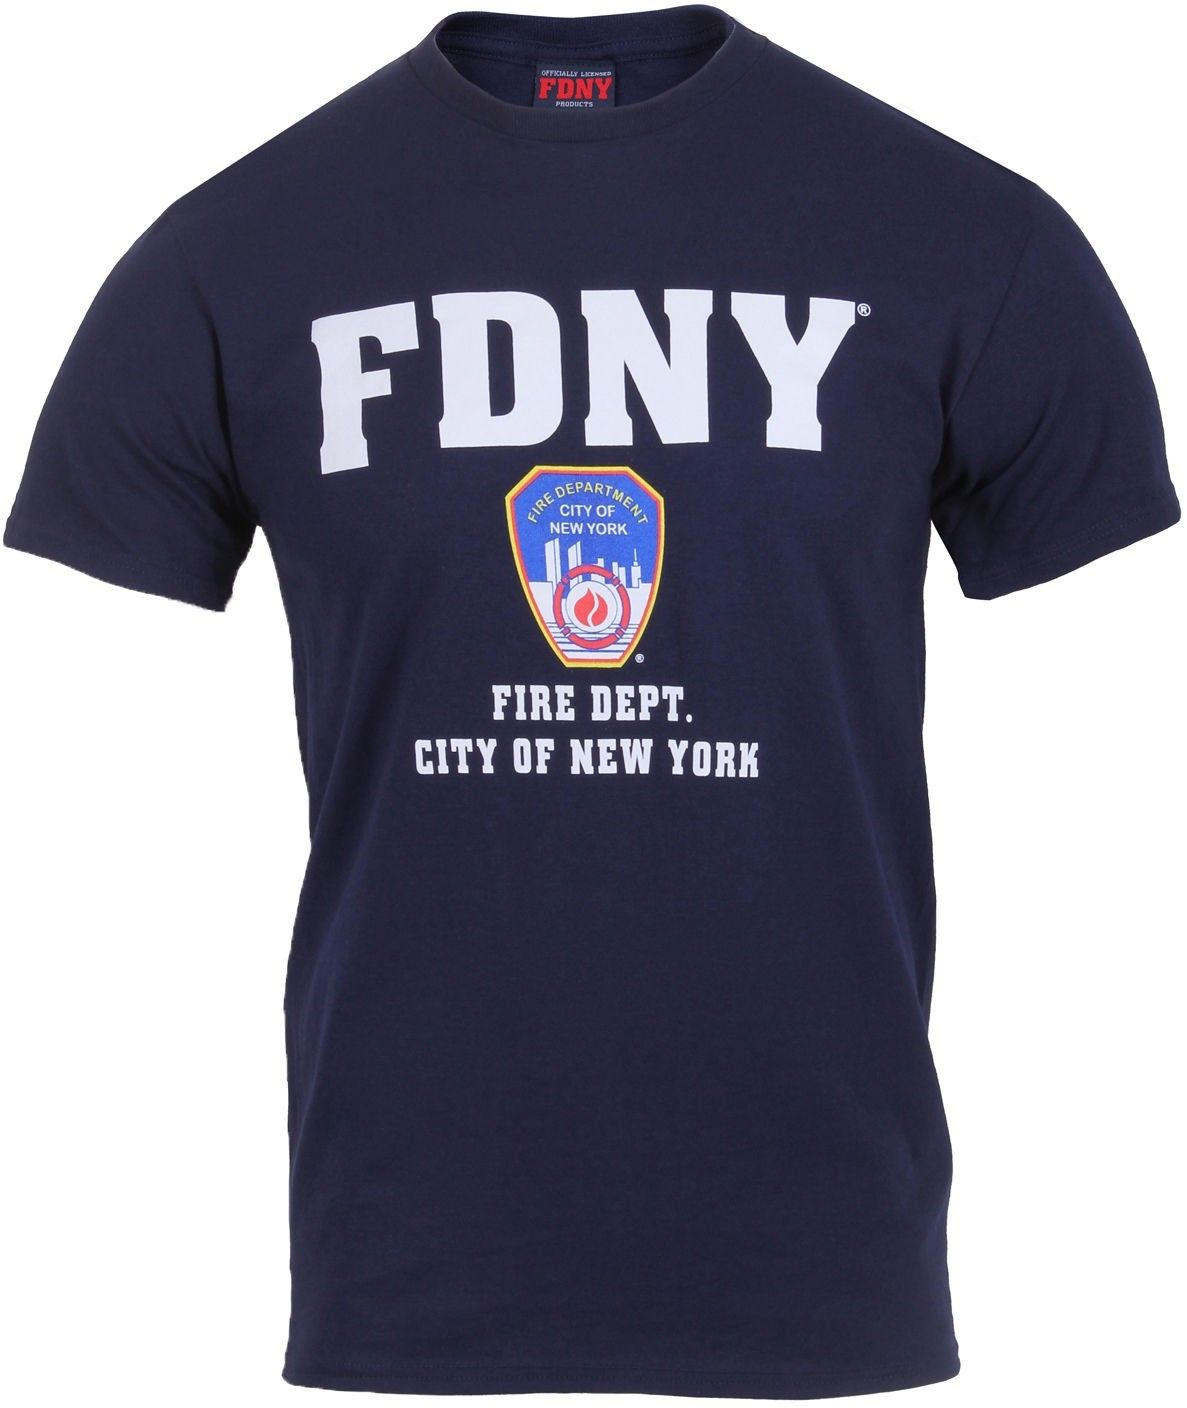 Navy Blue Official FDNY Fire Department City of New York T-Shirt